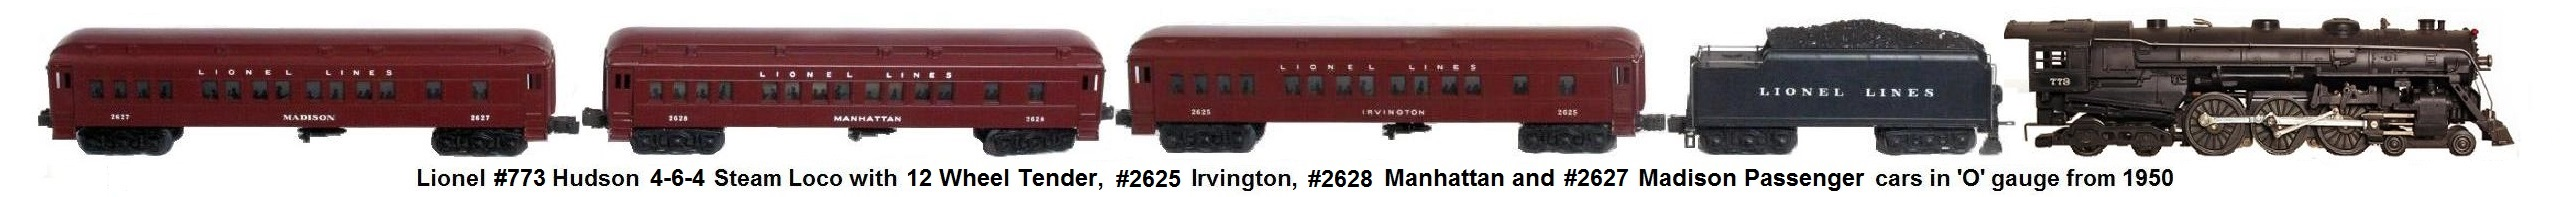 Lionel 'O' gauge #773 Hudson steam loco and Irvington passenger cars from 1950